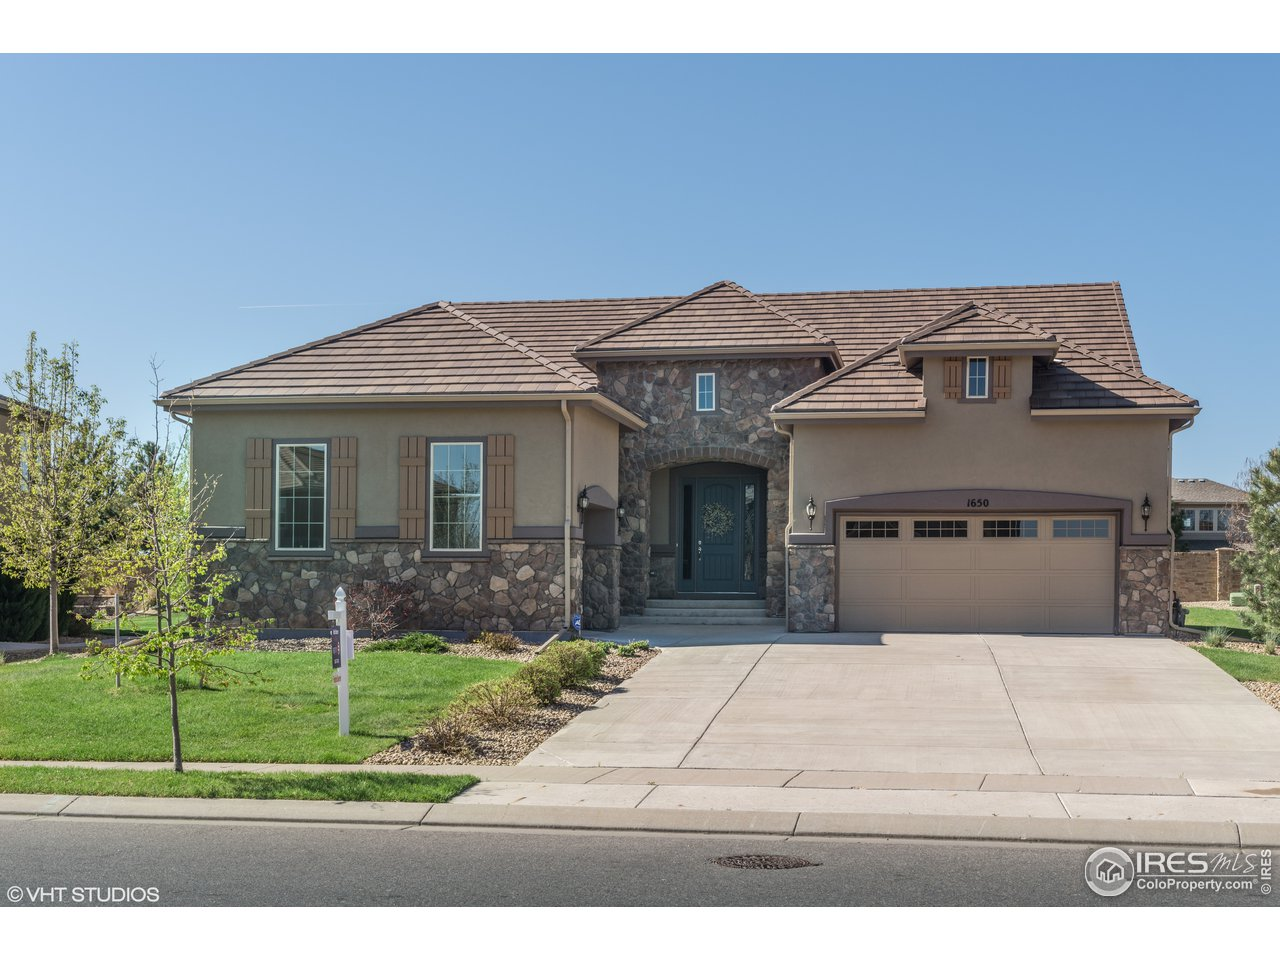 1650 Tiverton Ave, Broomfield CO 80023